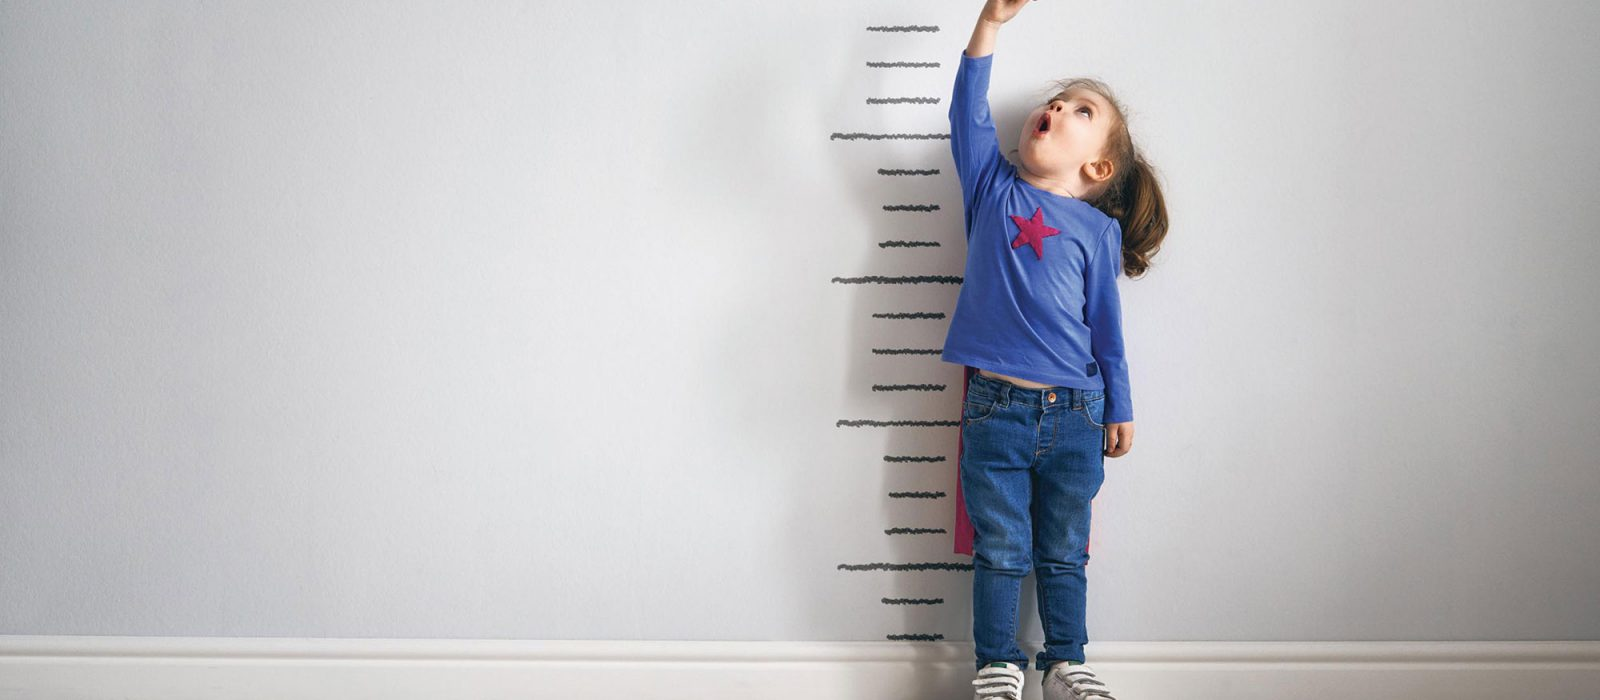 Girl measuring height against wall chart